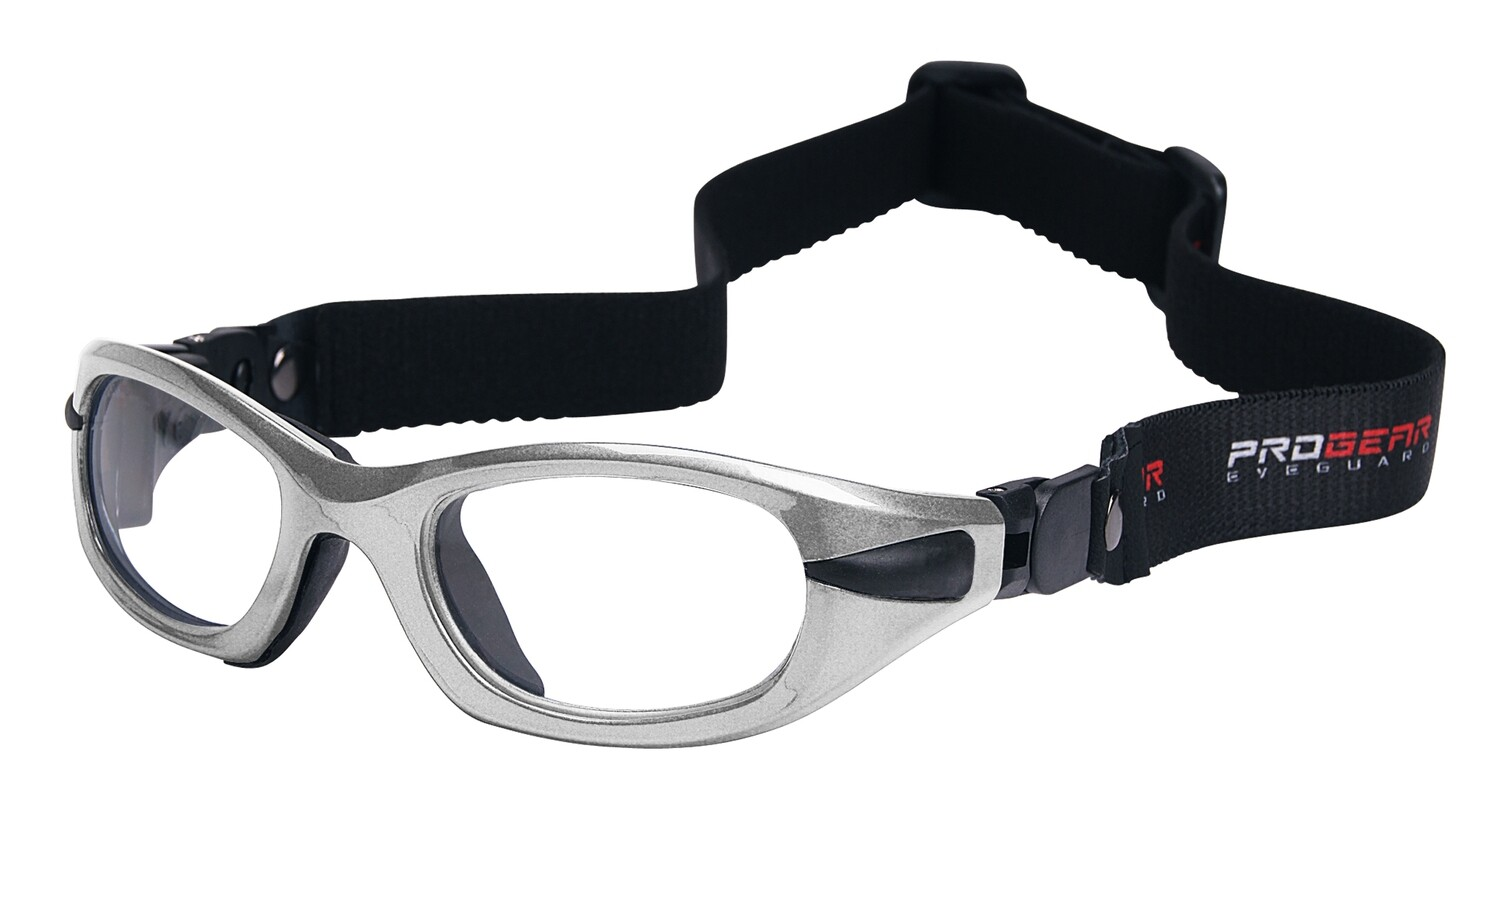 Eyeguard - S size - Strap version (6 colors)